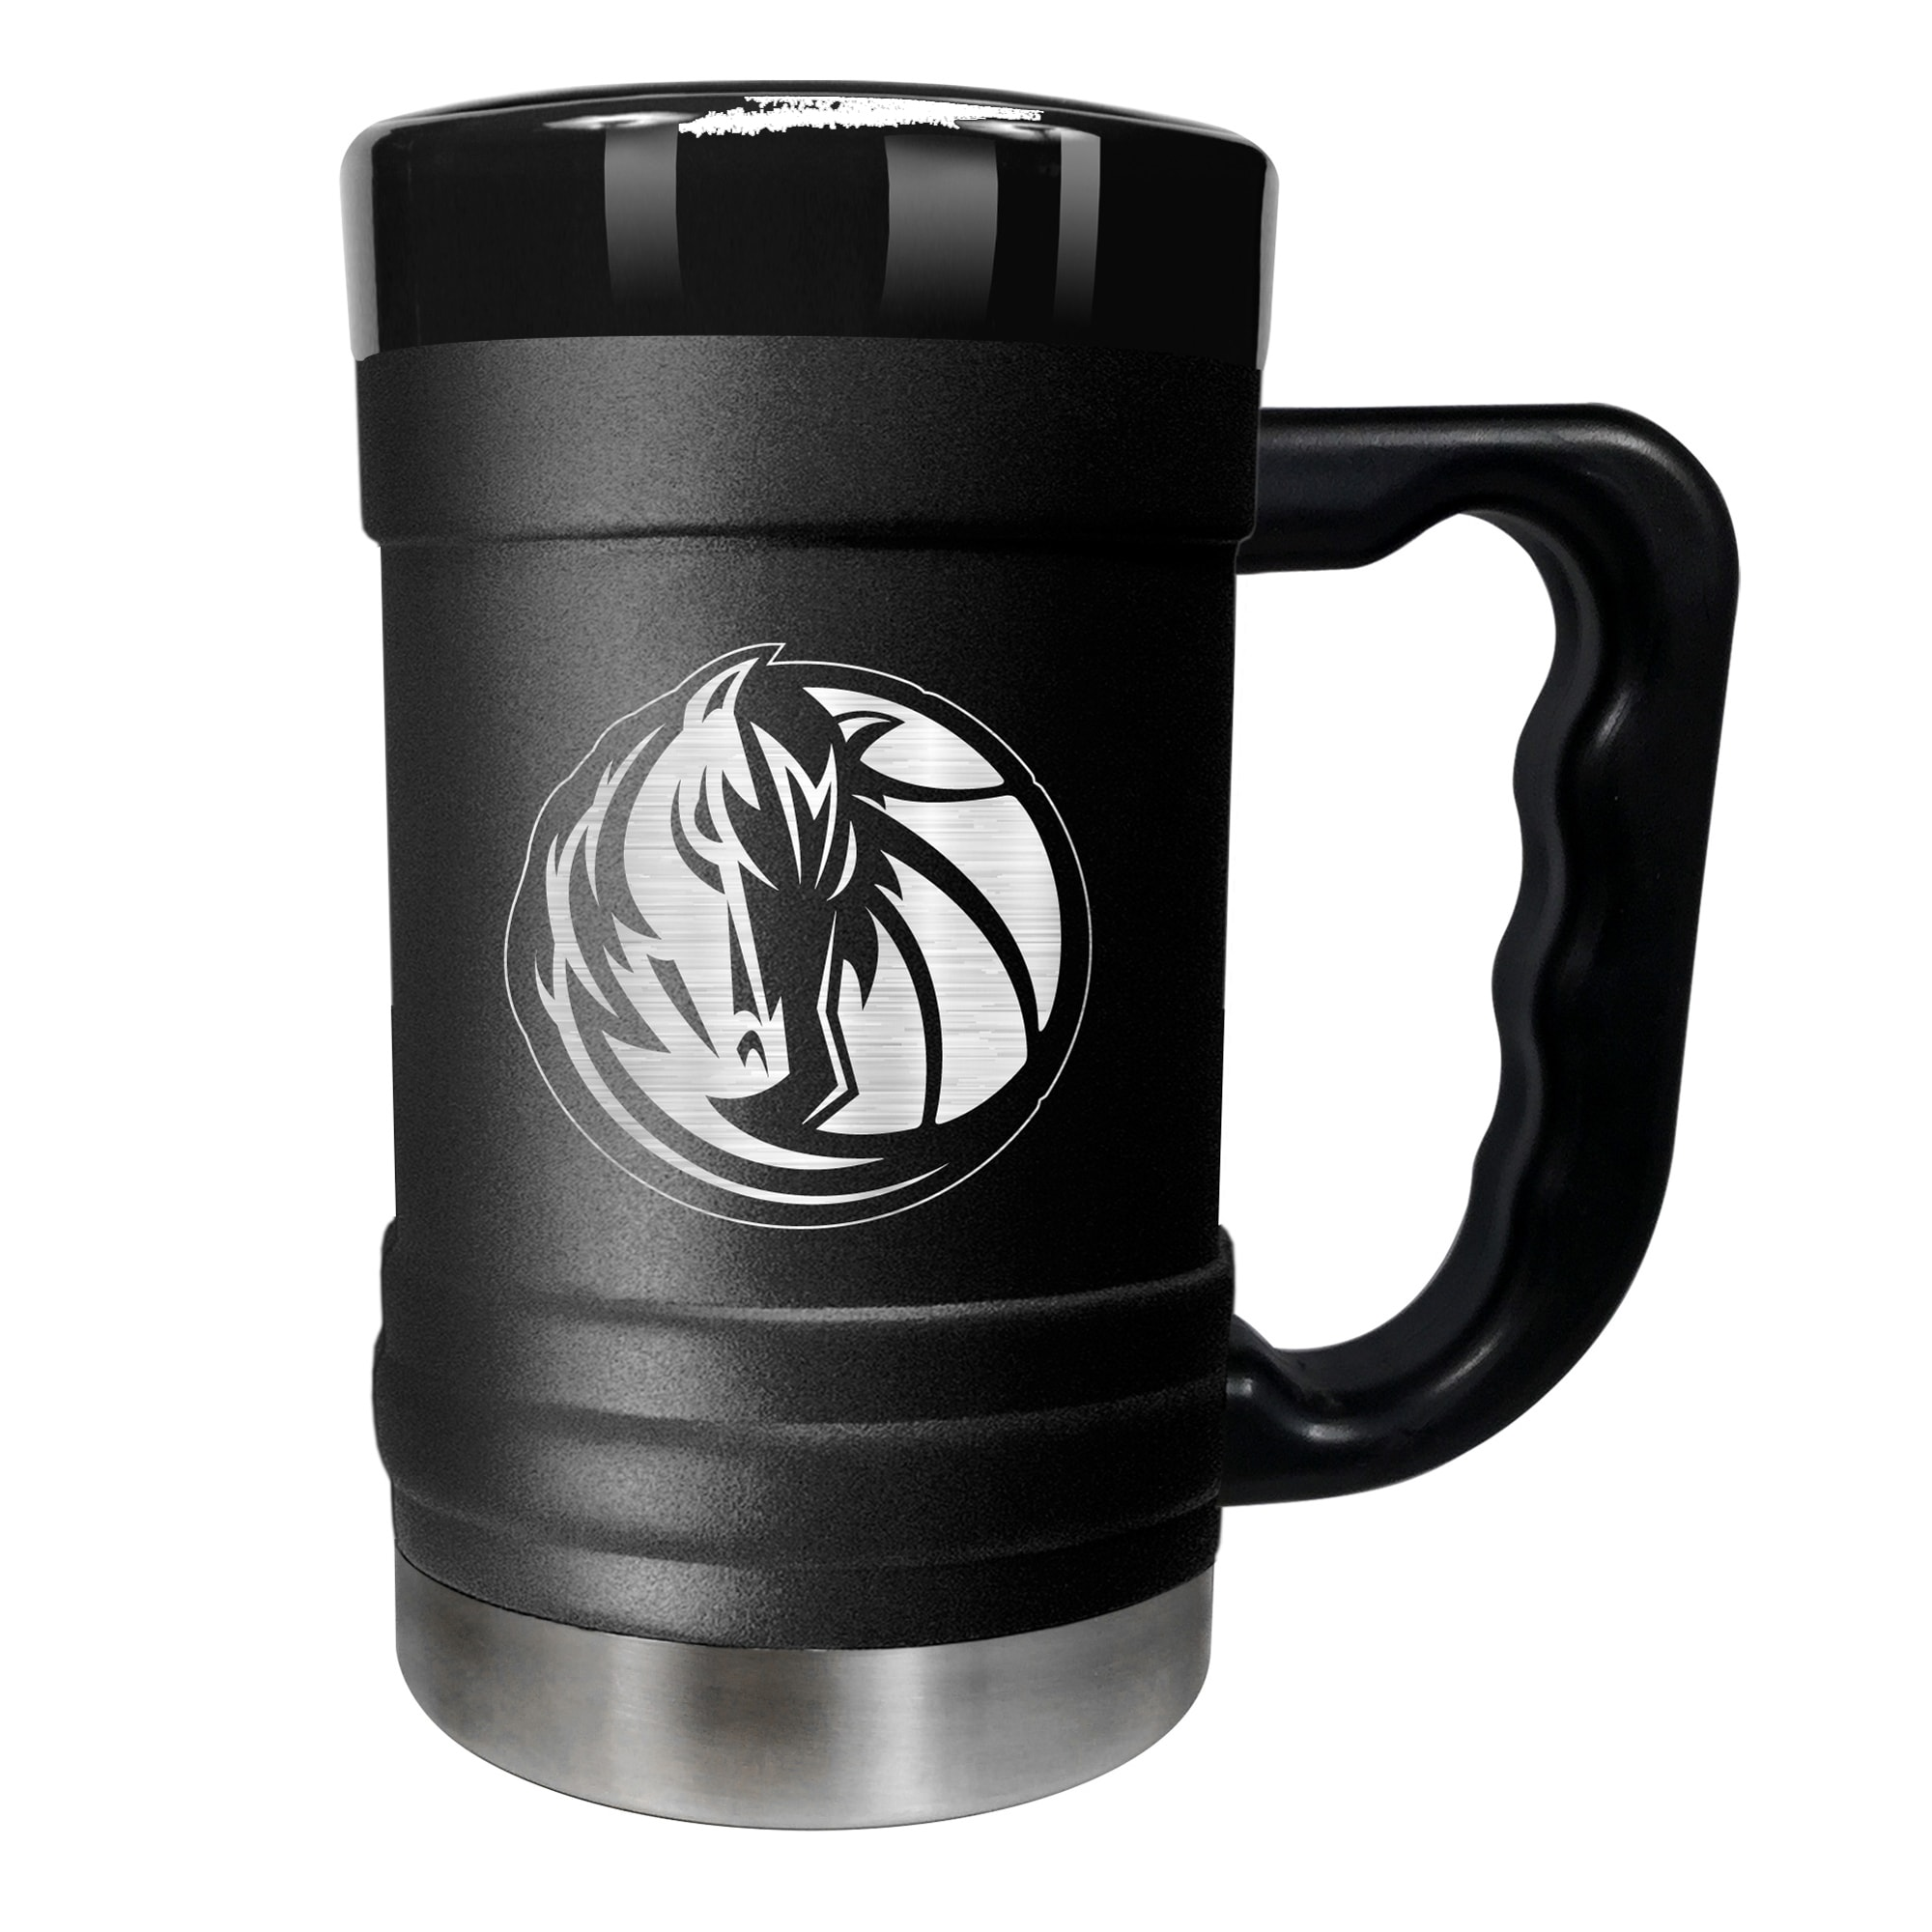 Dallas Mavericks 15oz. Stealth Coach Coffee Mug - Black